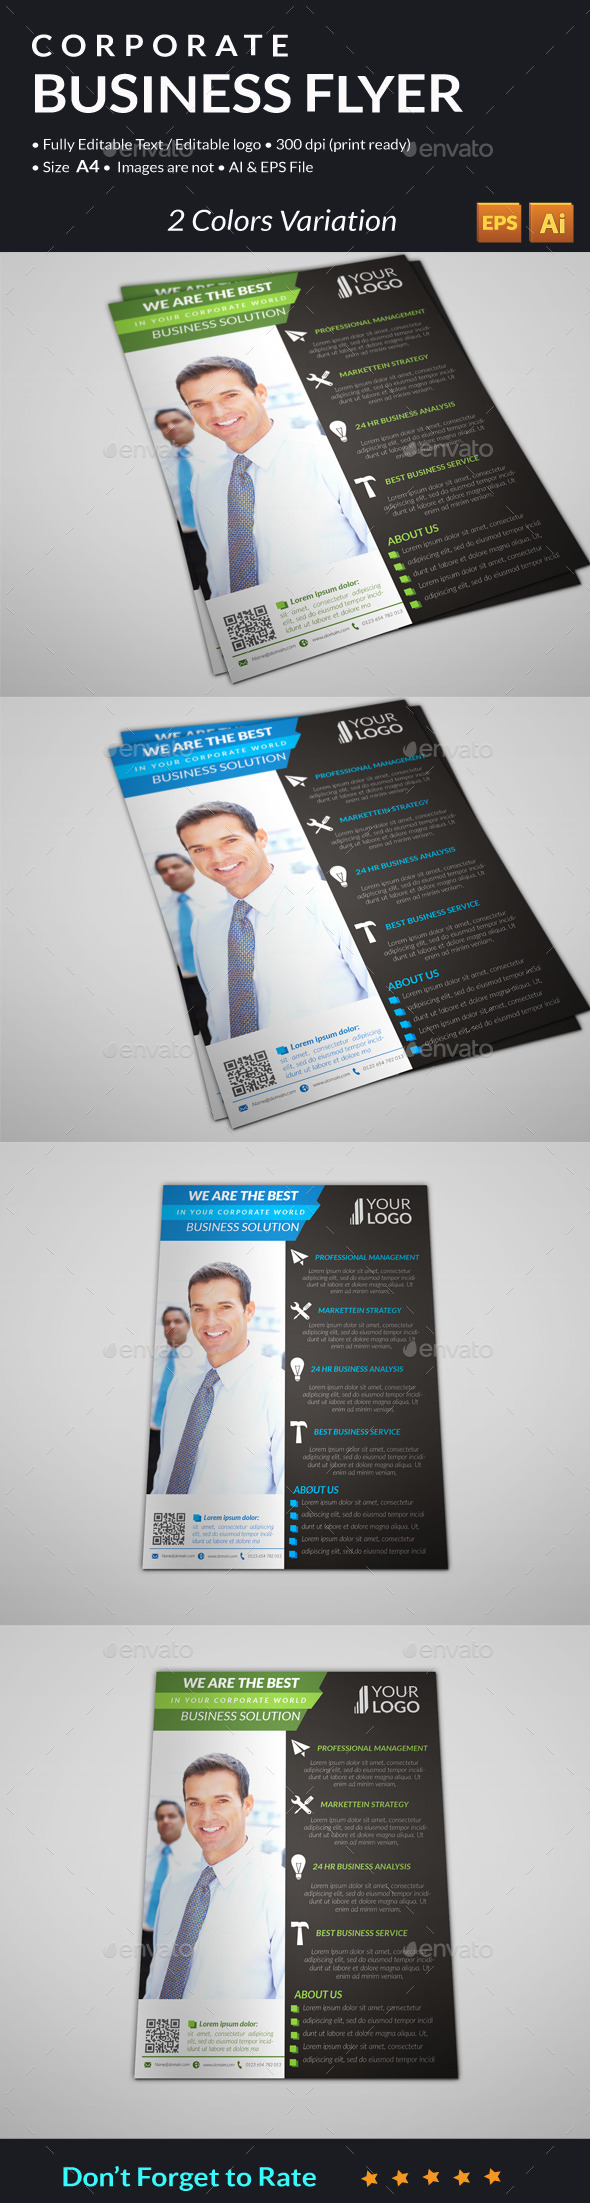 GraphicRiver Corporate Business Flyer 11112809